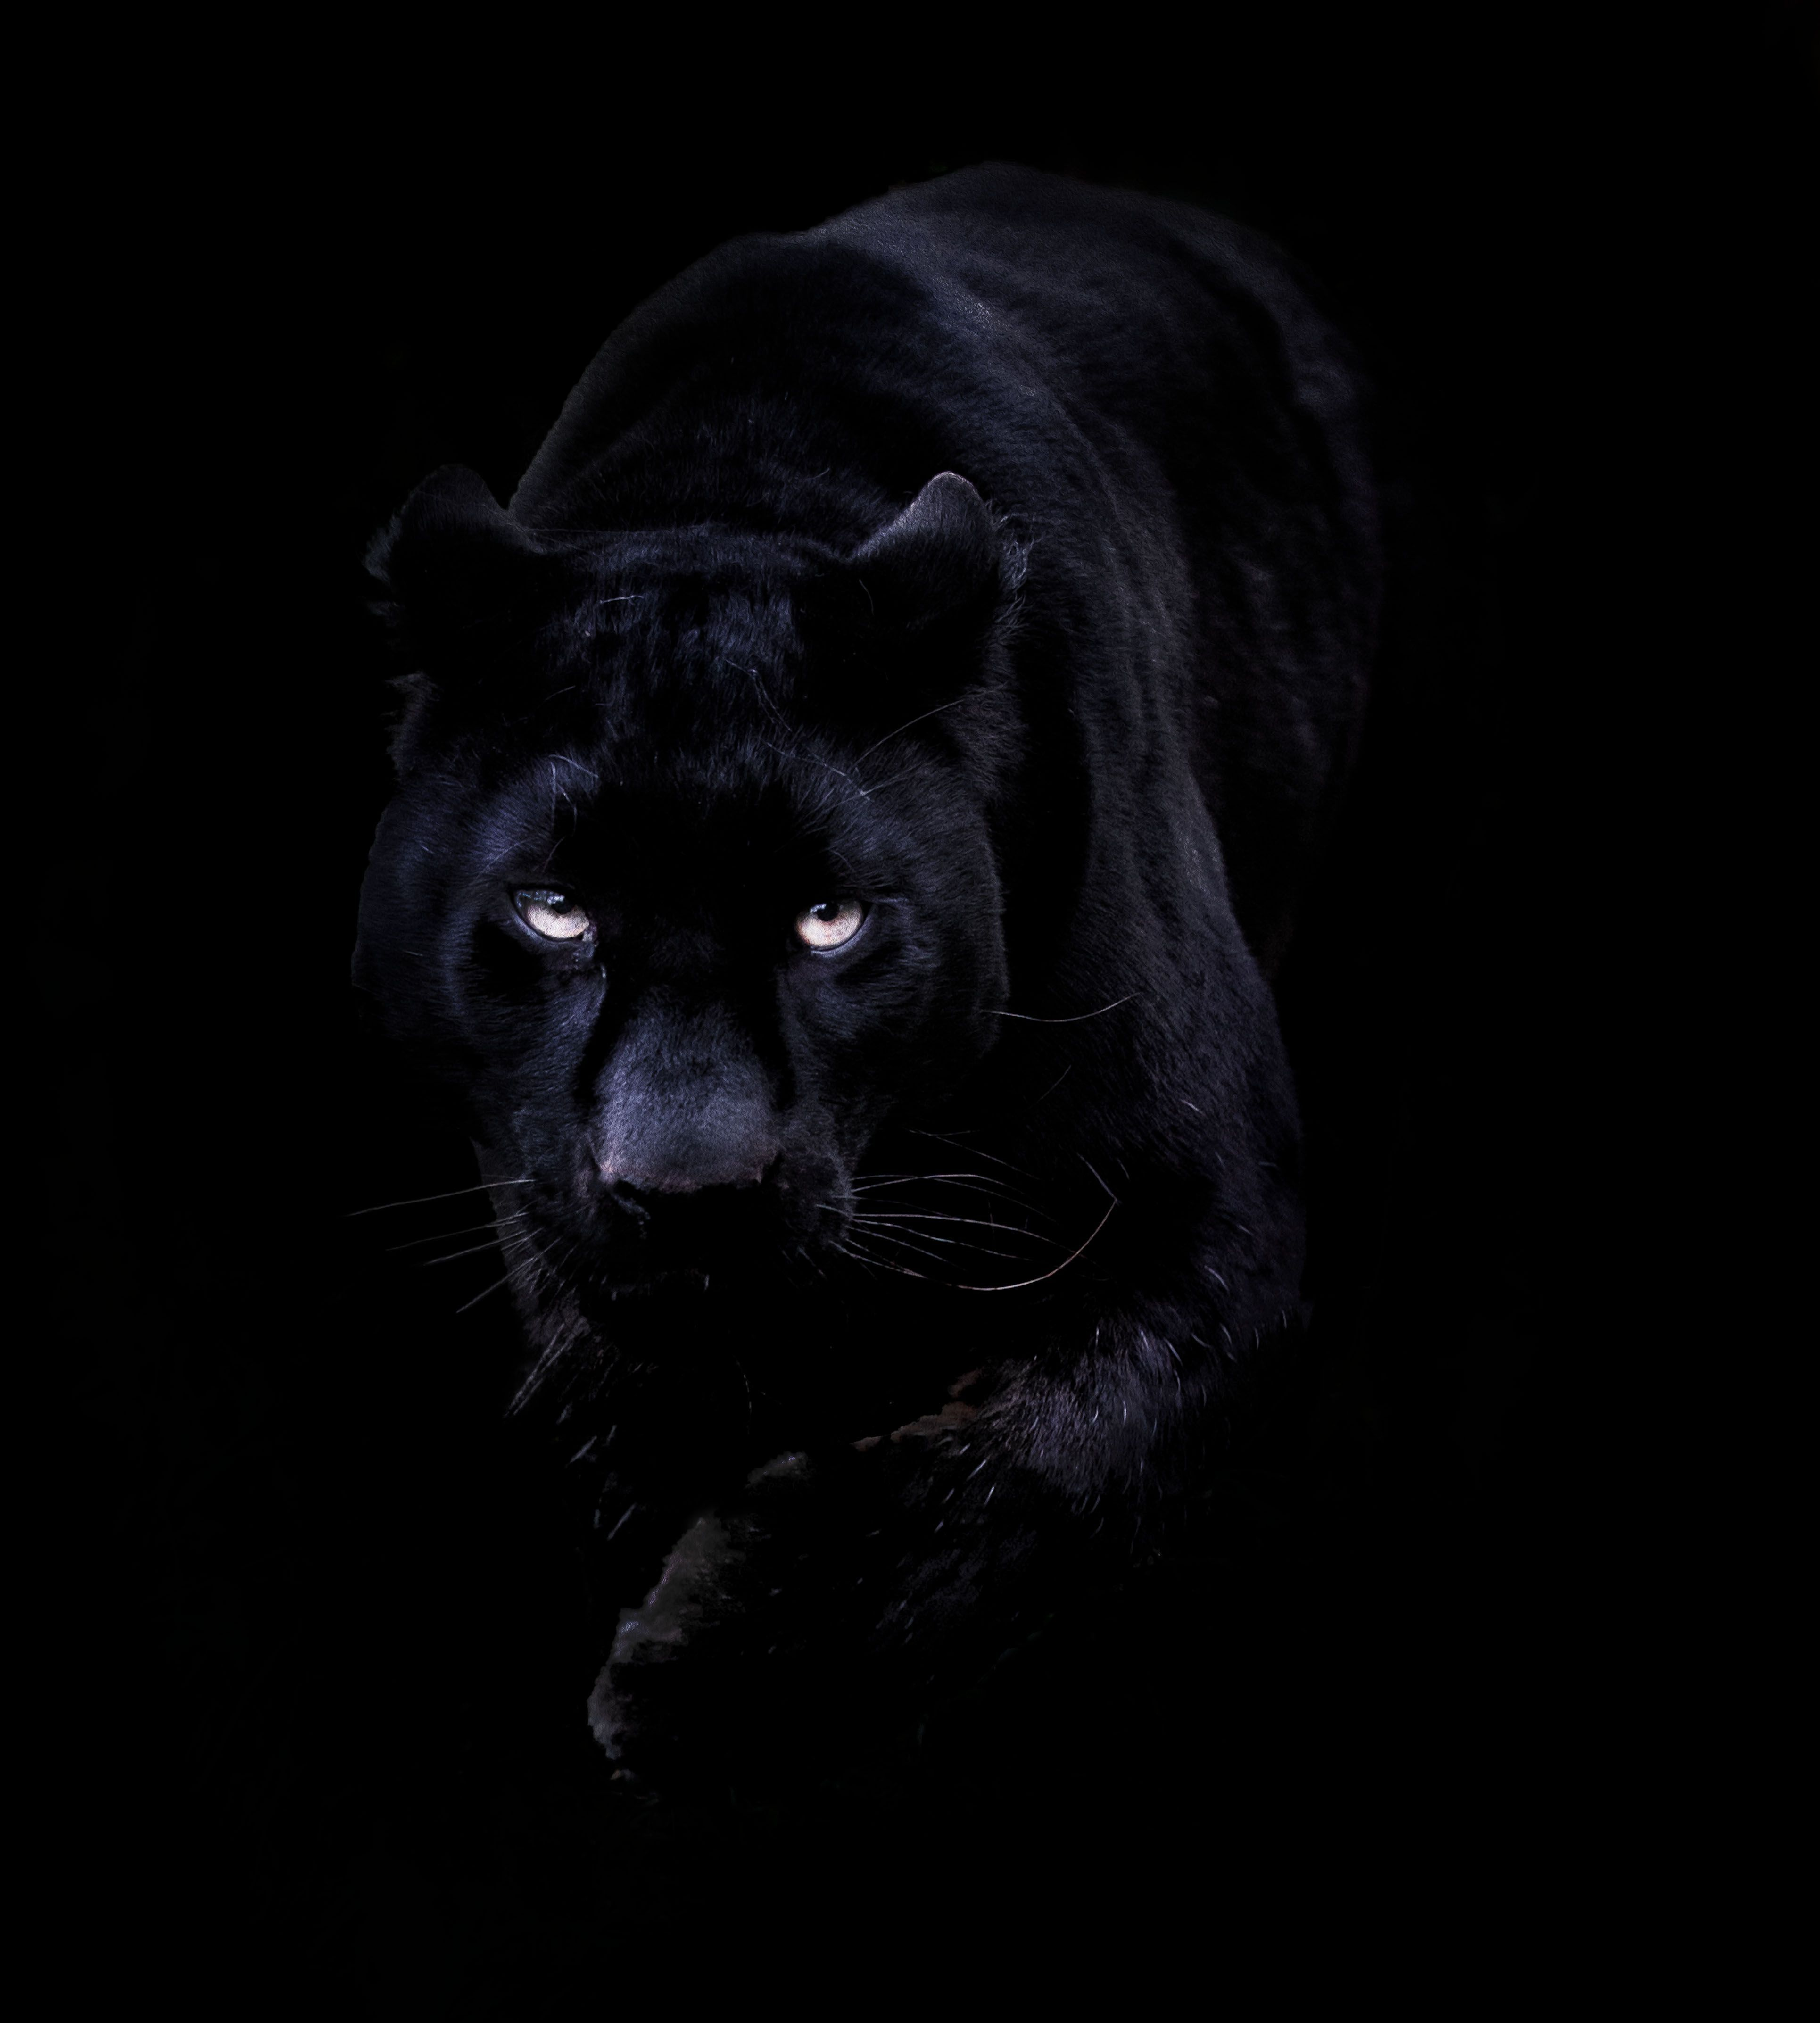 3860x4290 Best Of Black Panther Animal Wallpaper Iphone Design Anime In 2020 Black Panther Cat Panther Cat Jaguar Animal